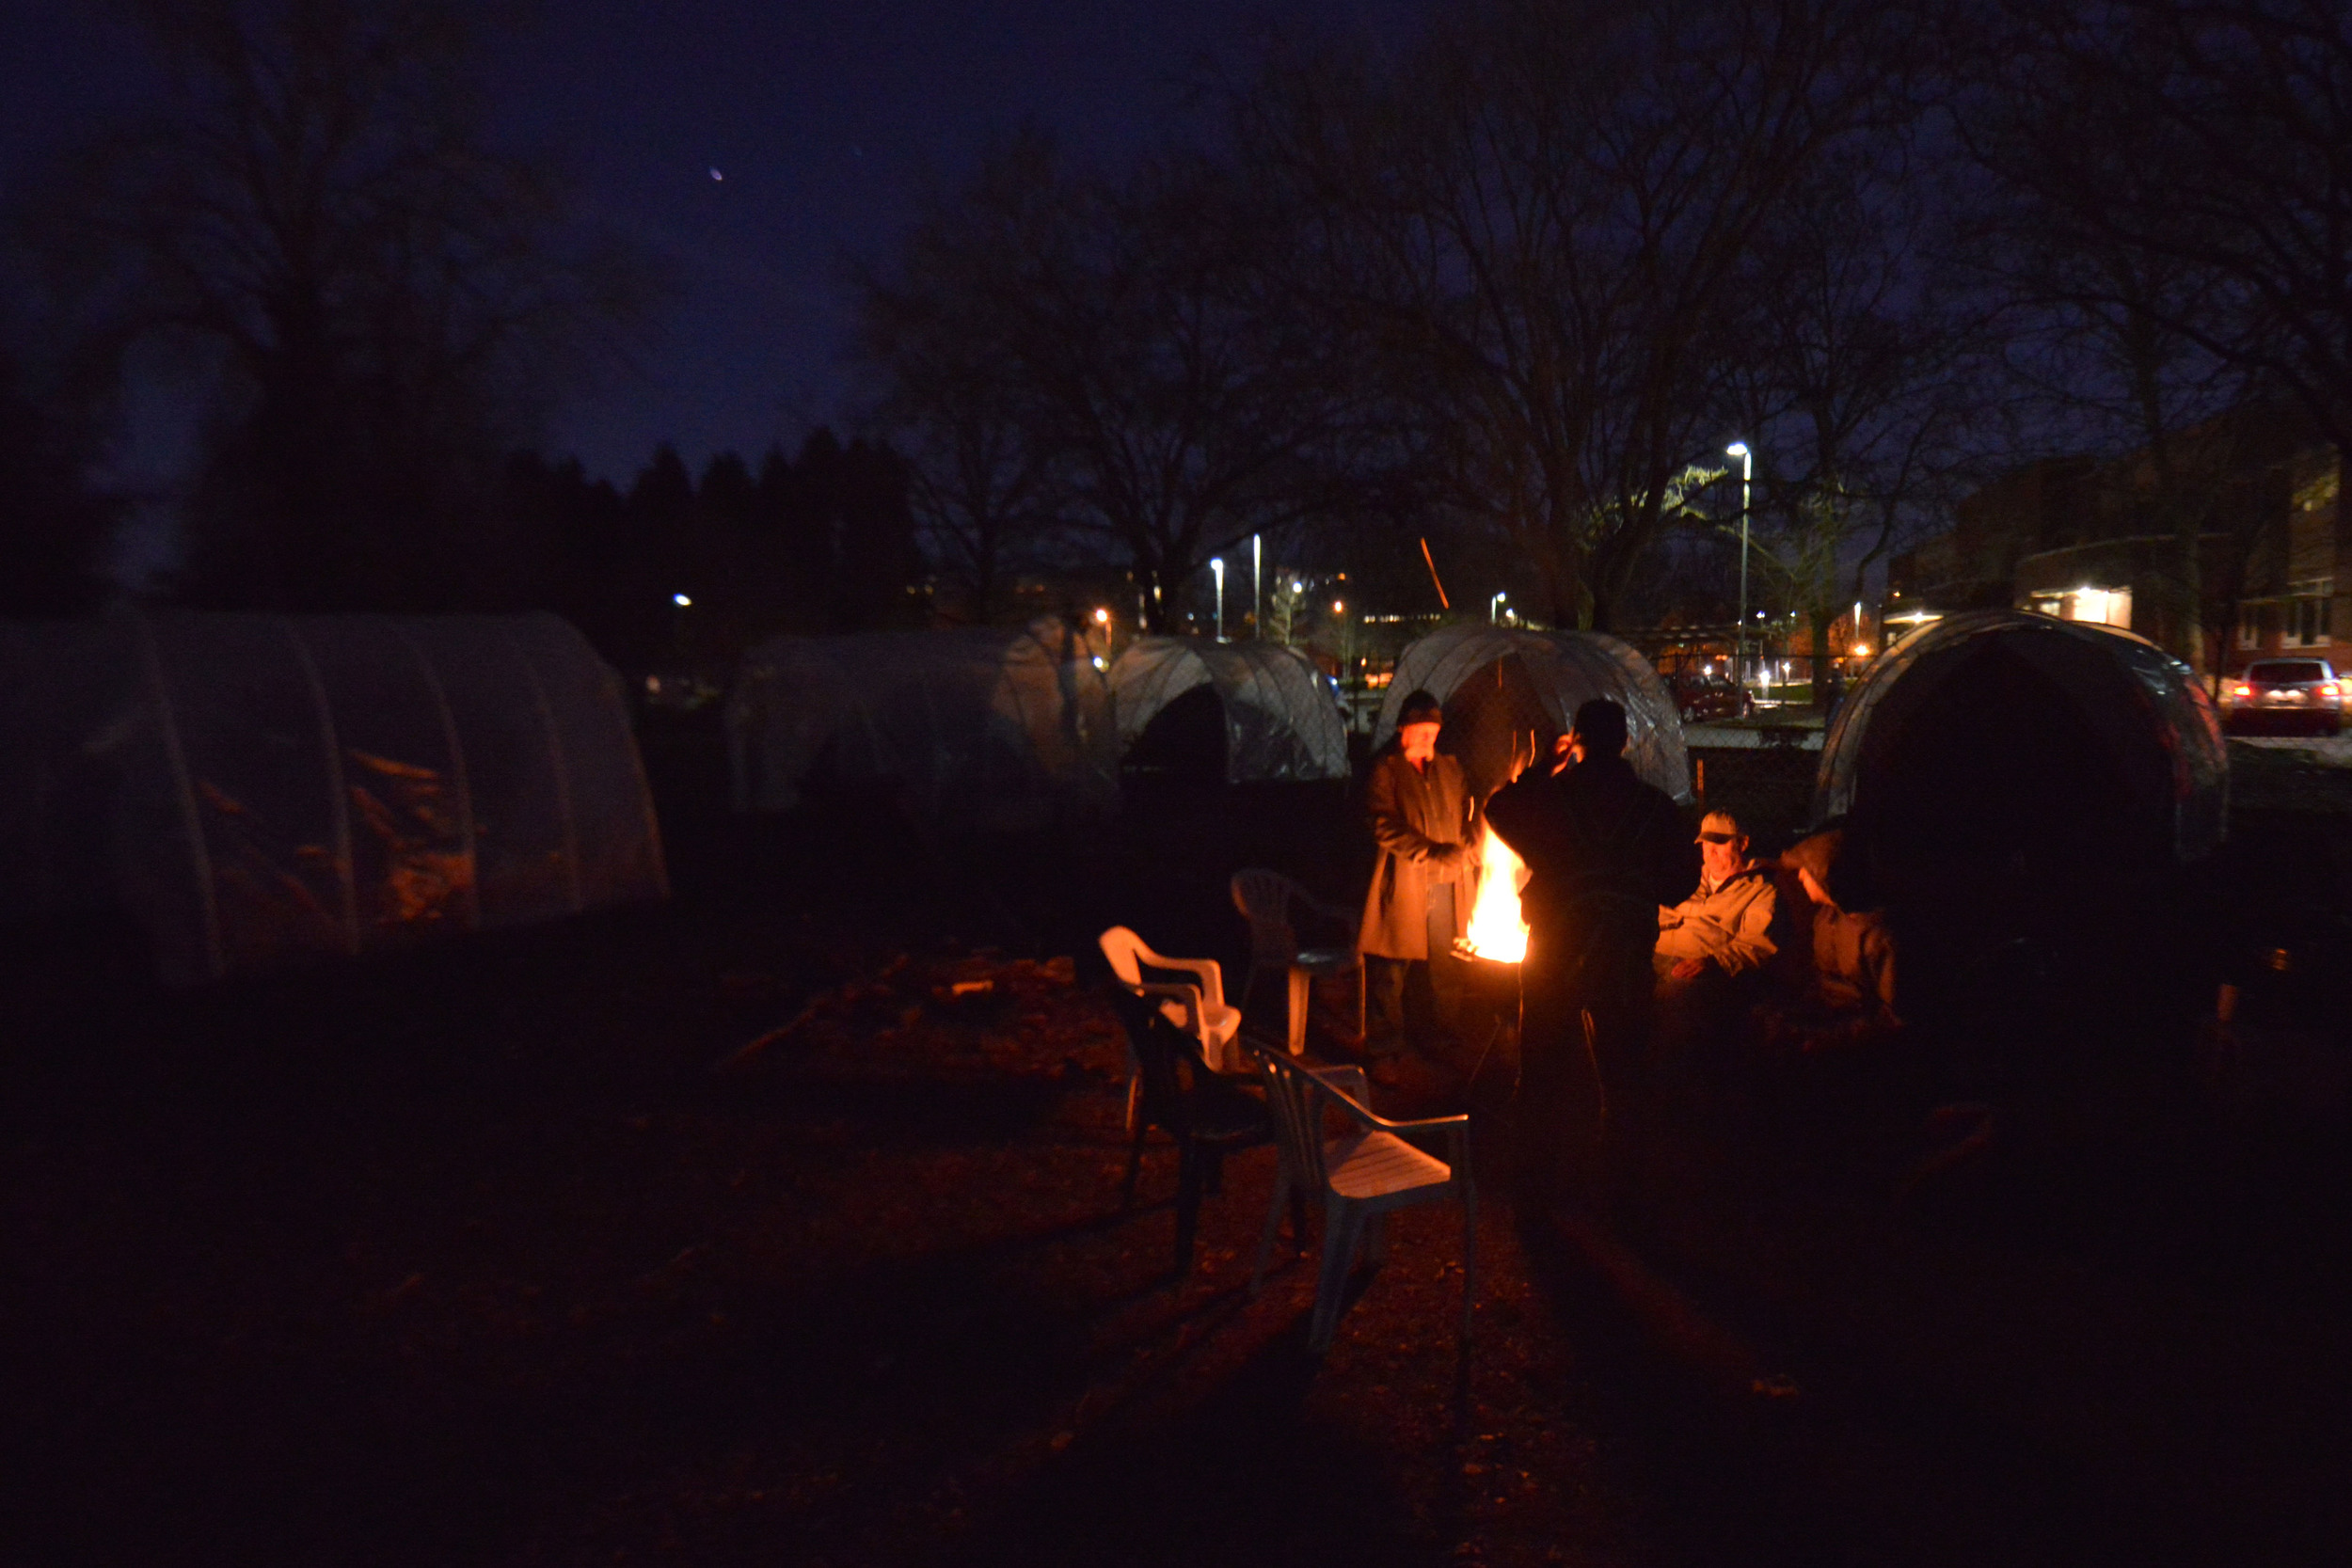 Eugene, ORE - On cold nights, a controlled bonefine is made to keep warm and to social among the Nightingale Health Sanctuary. By: Debra Josephson